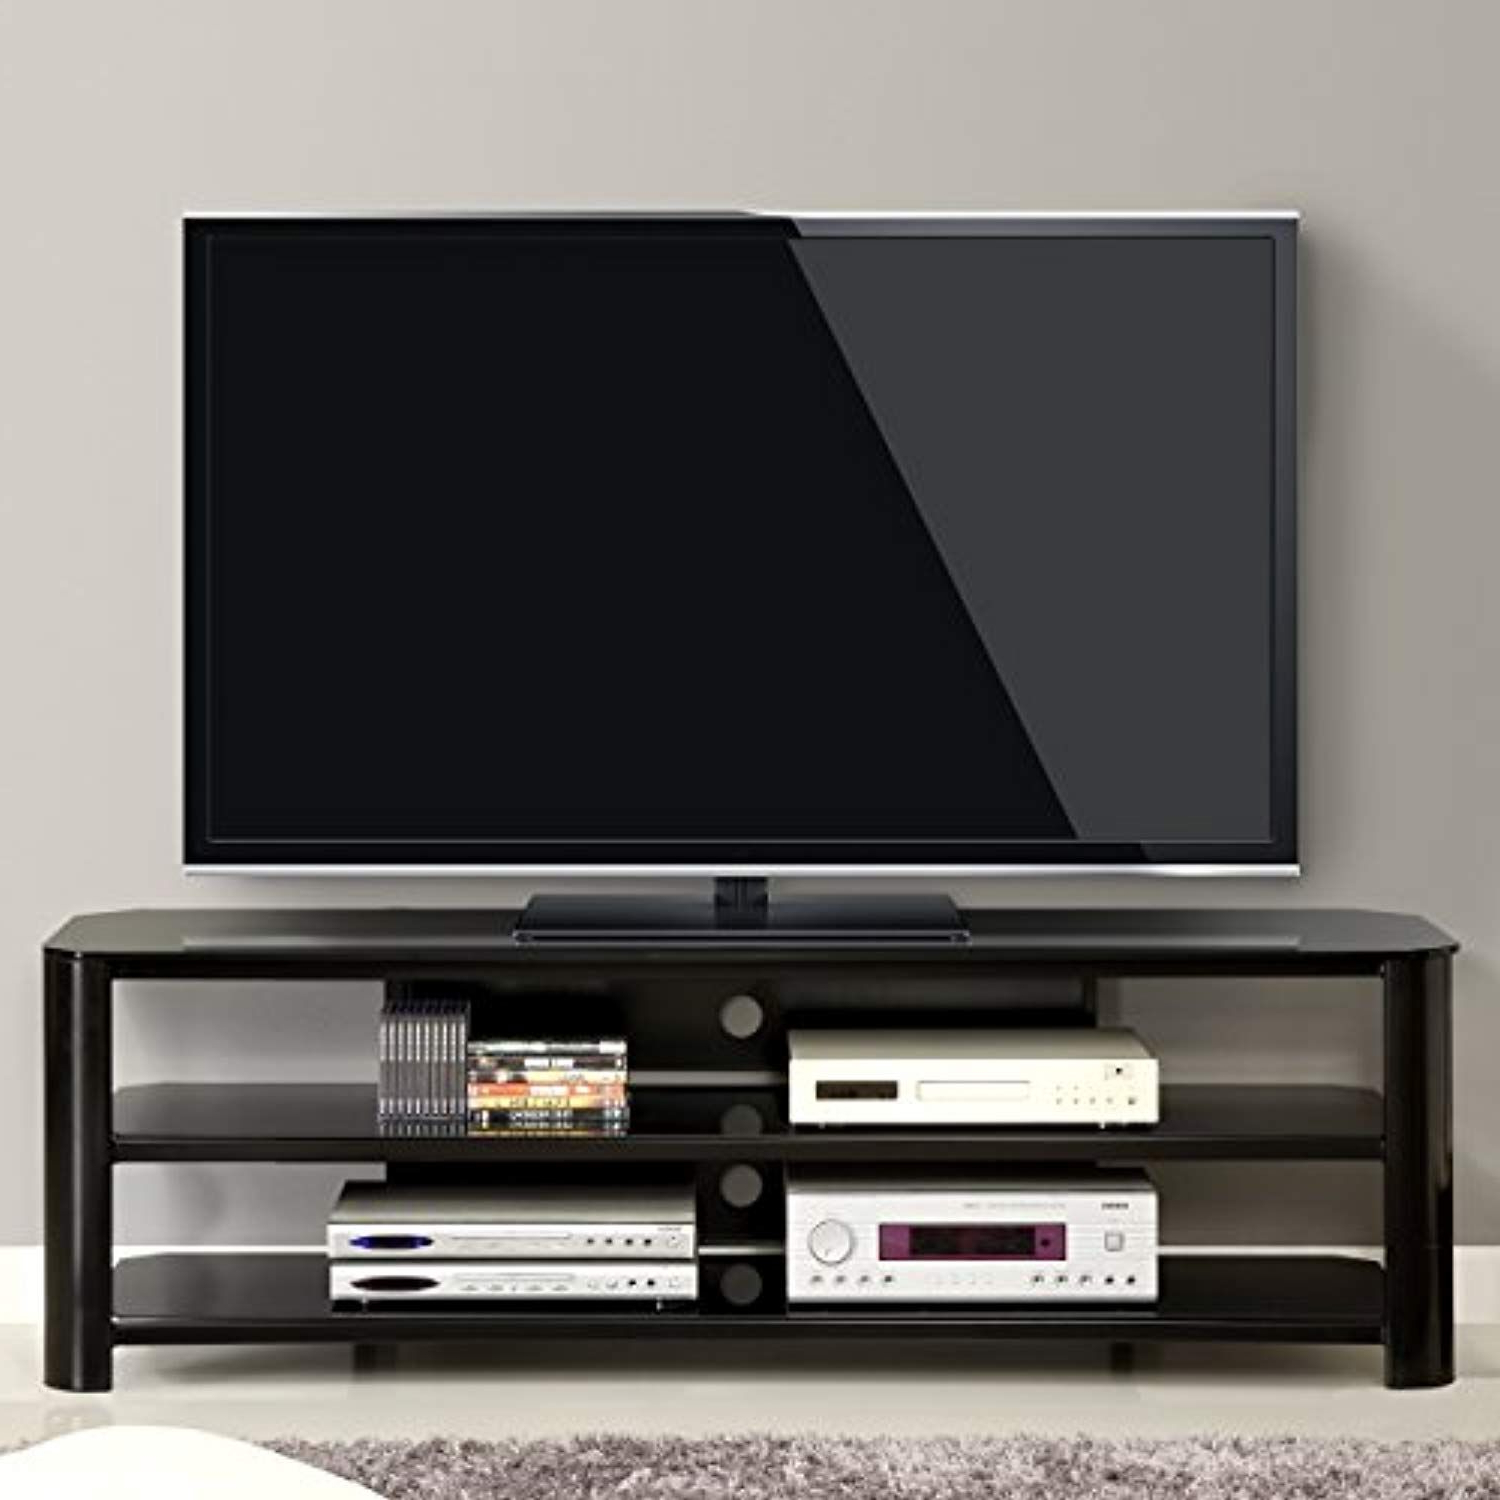 Innovex Tpt65g29 Oxford Fold N Snap 65€ Glass Tv Stand For Tvs Up With Regard To Oxford 70 Inch Tv Stands (View 4 of 20)